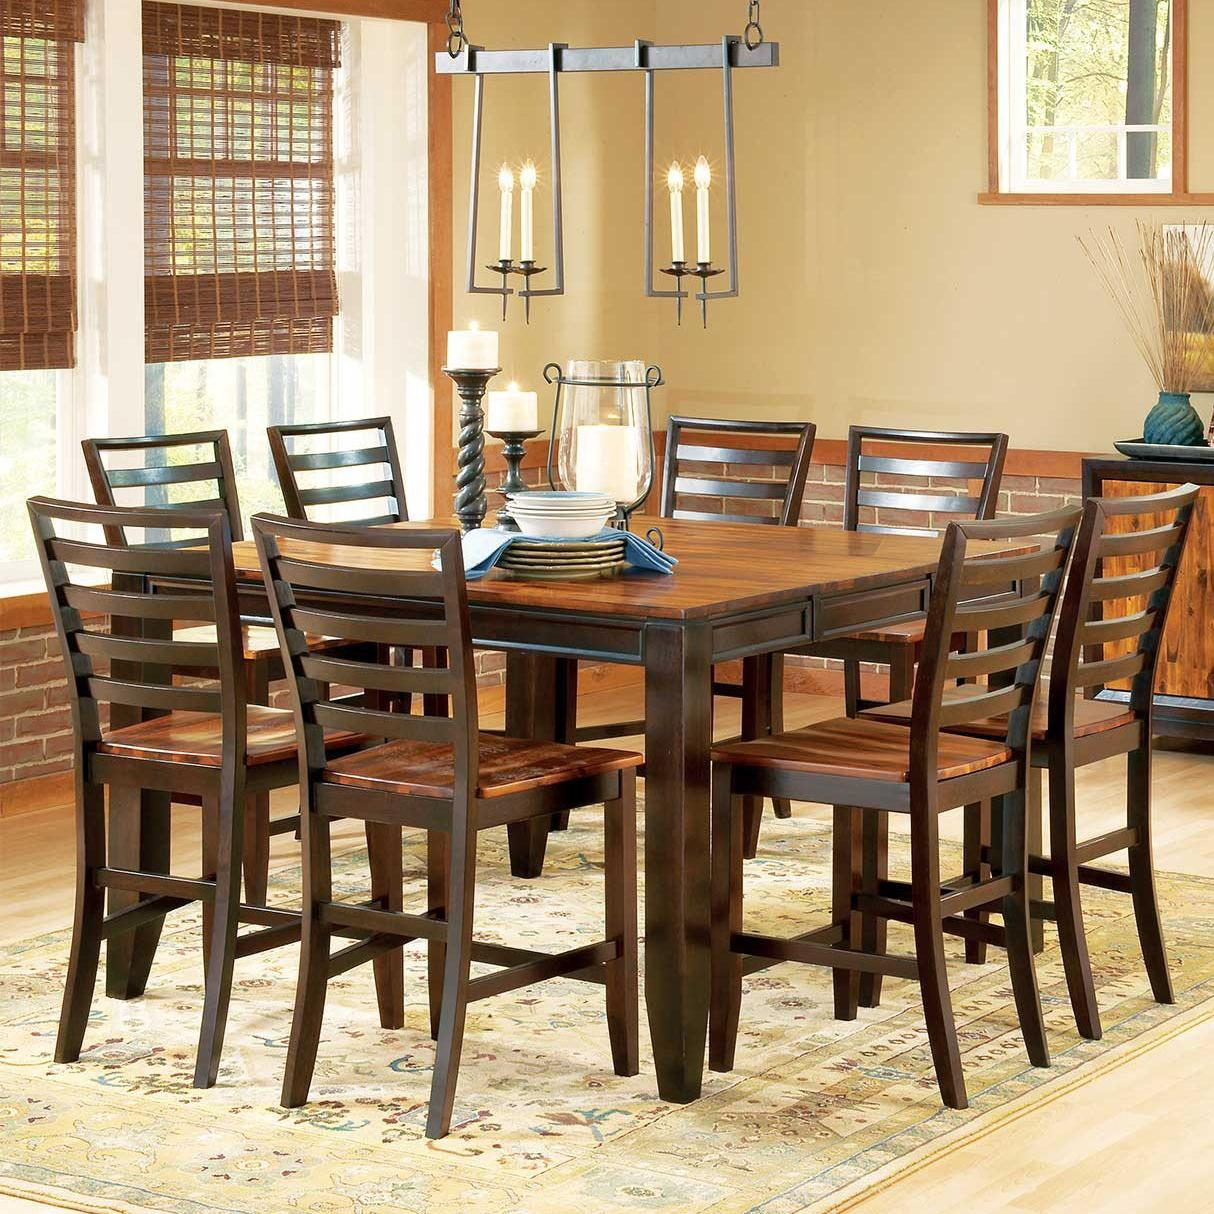 Belfort Essentials Abaco 9 Piece Gathering Table Set 54